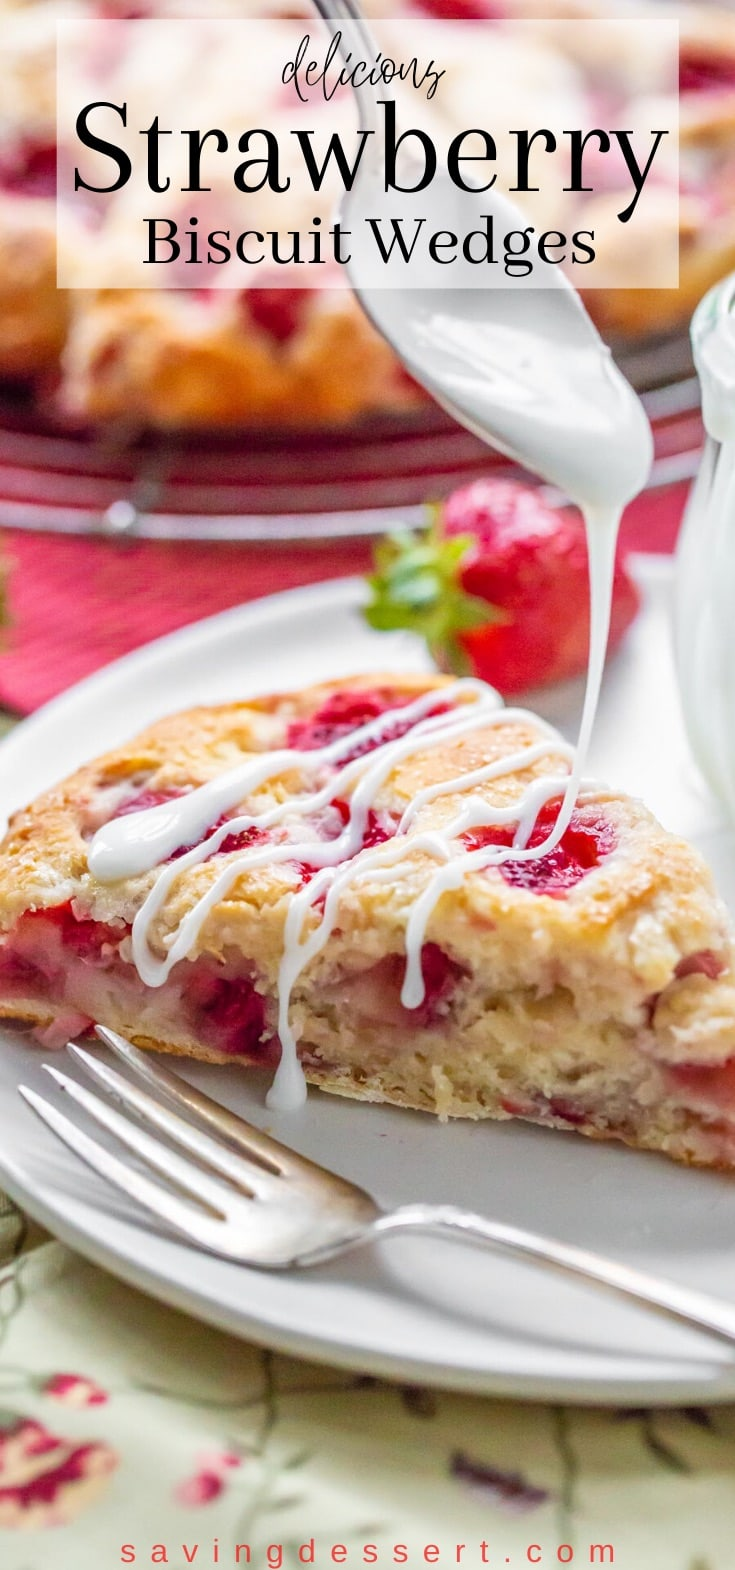 A biscuit wedge filled with chopped strawberries being drizzled with a simple icing